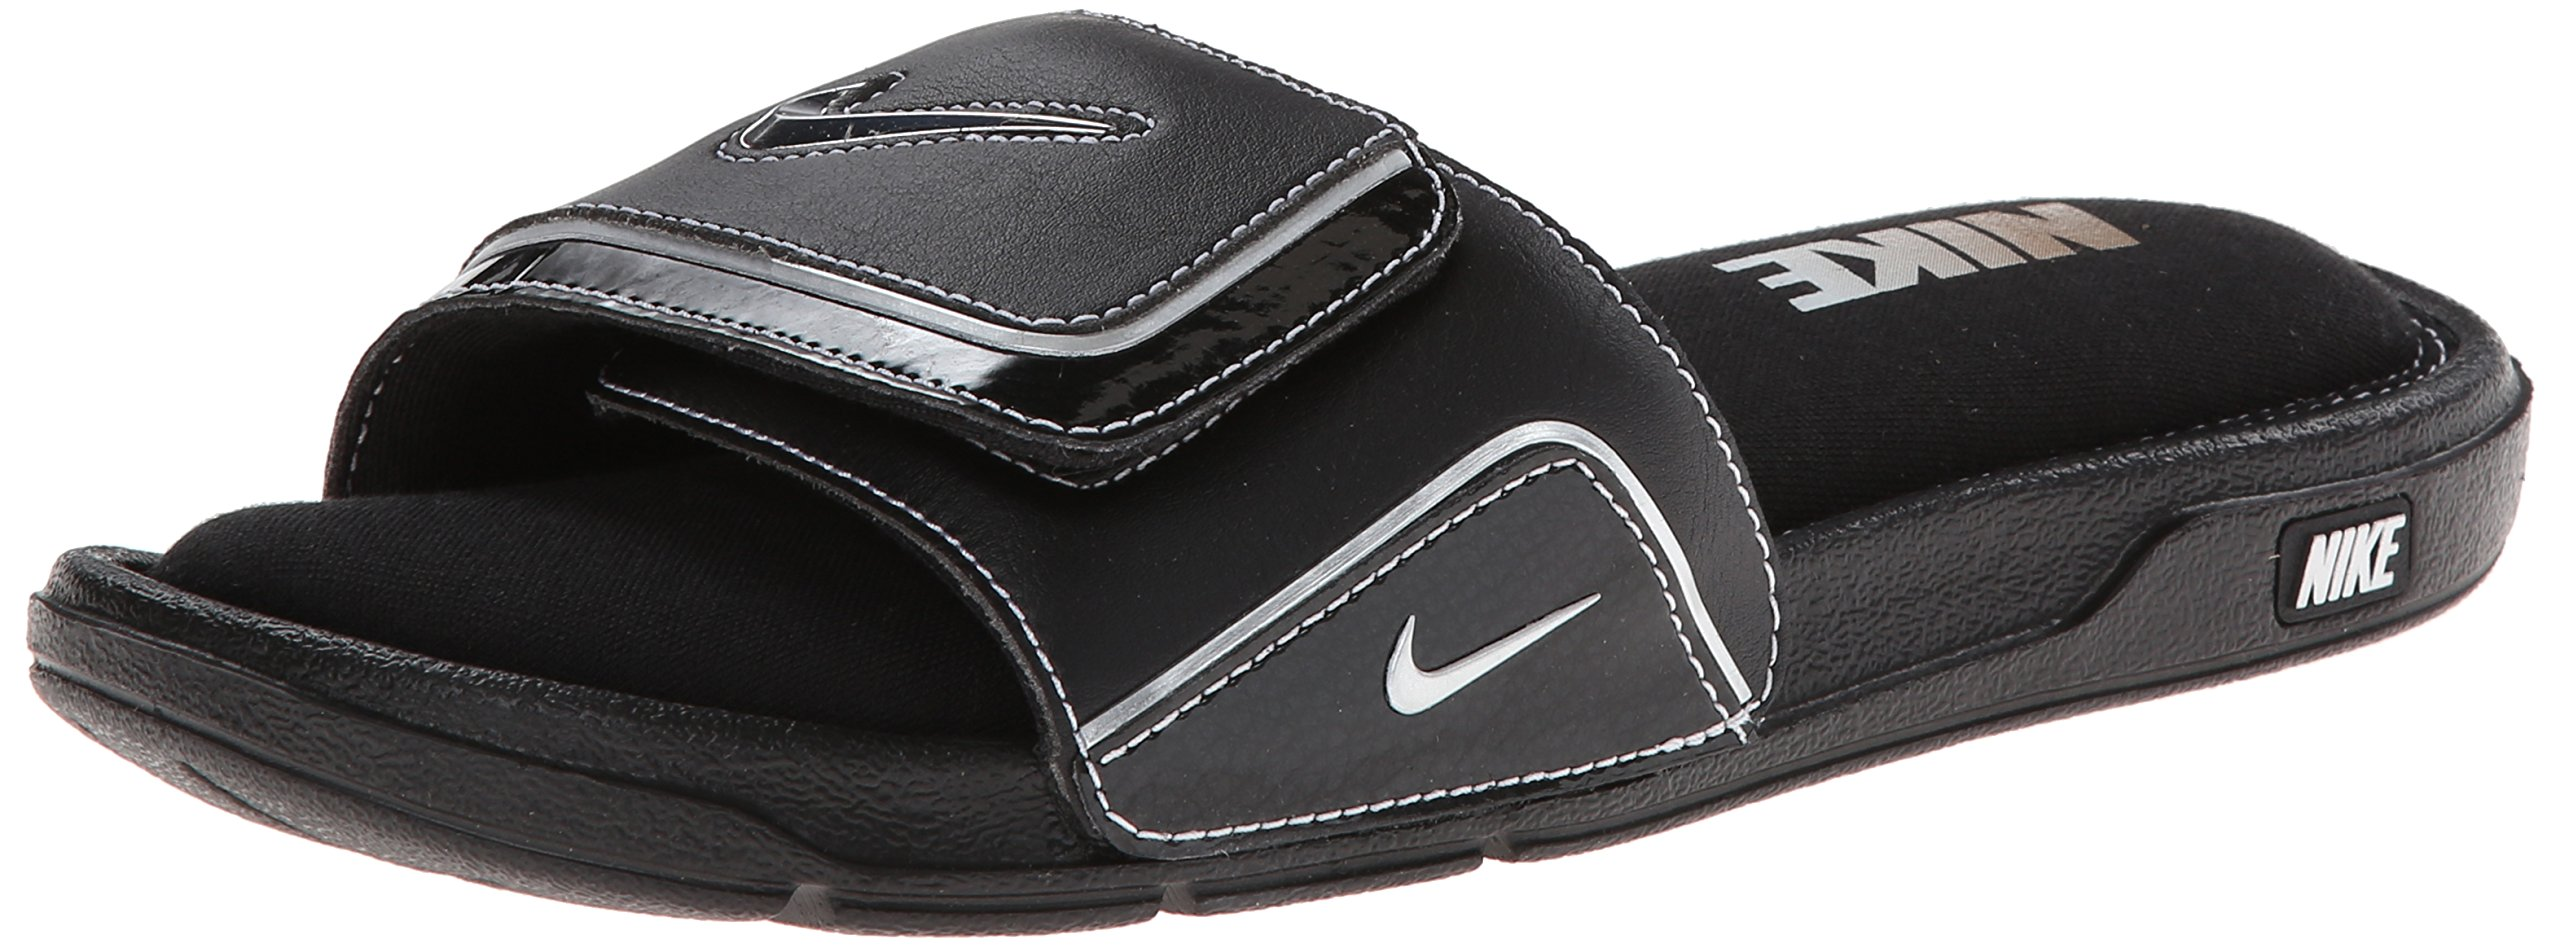 Nike Mens Comfort Slide 2 Sandal (8, Black/Metallic Silver/White)